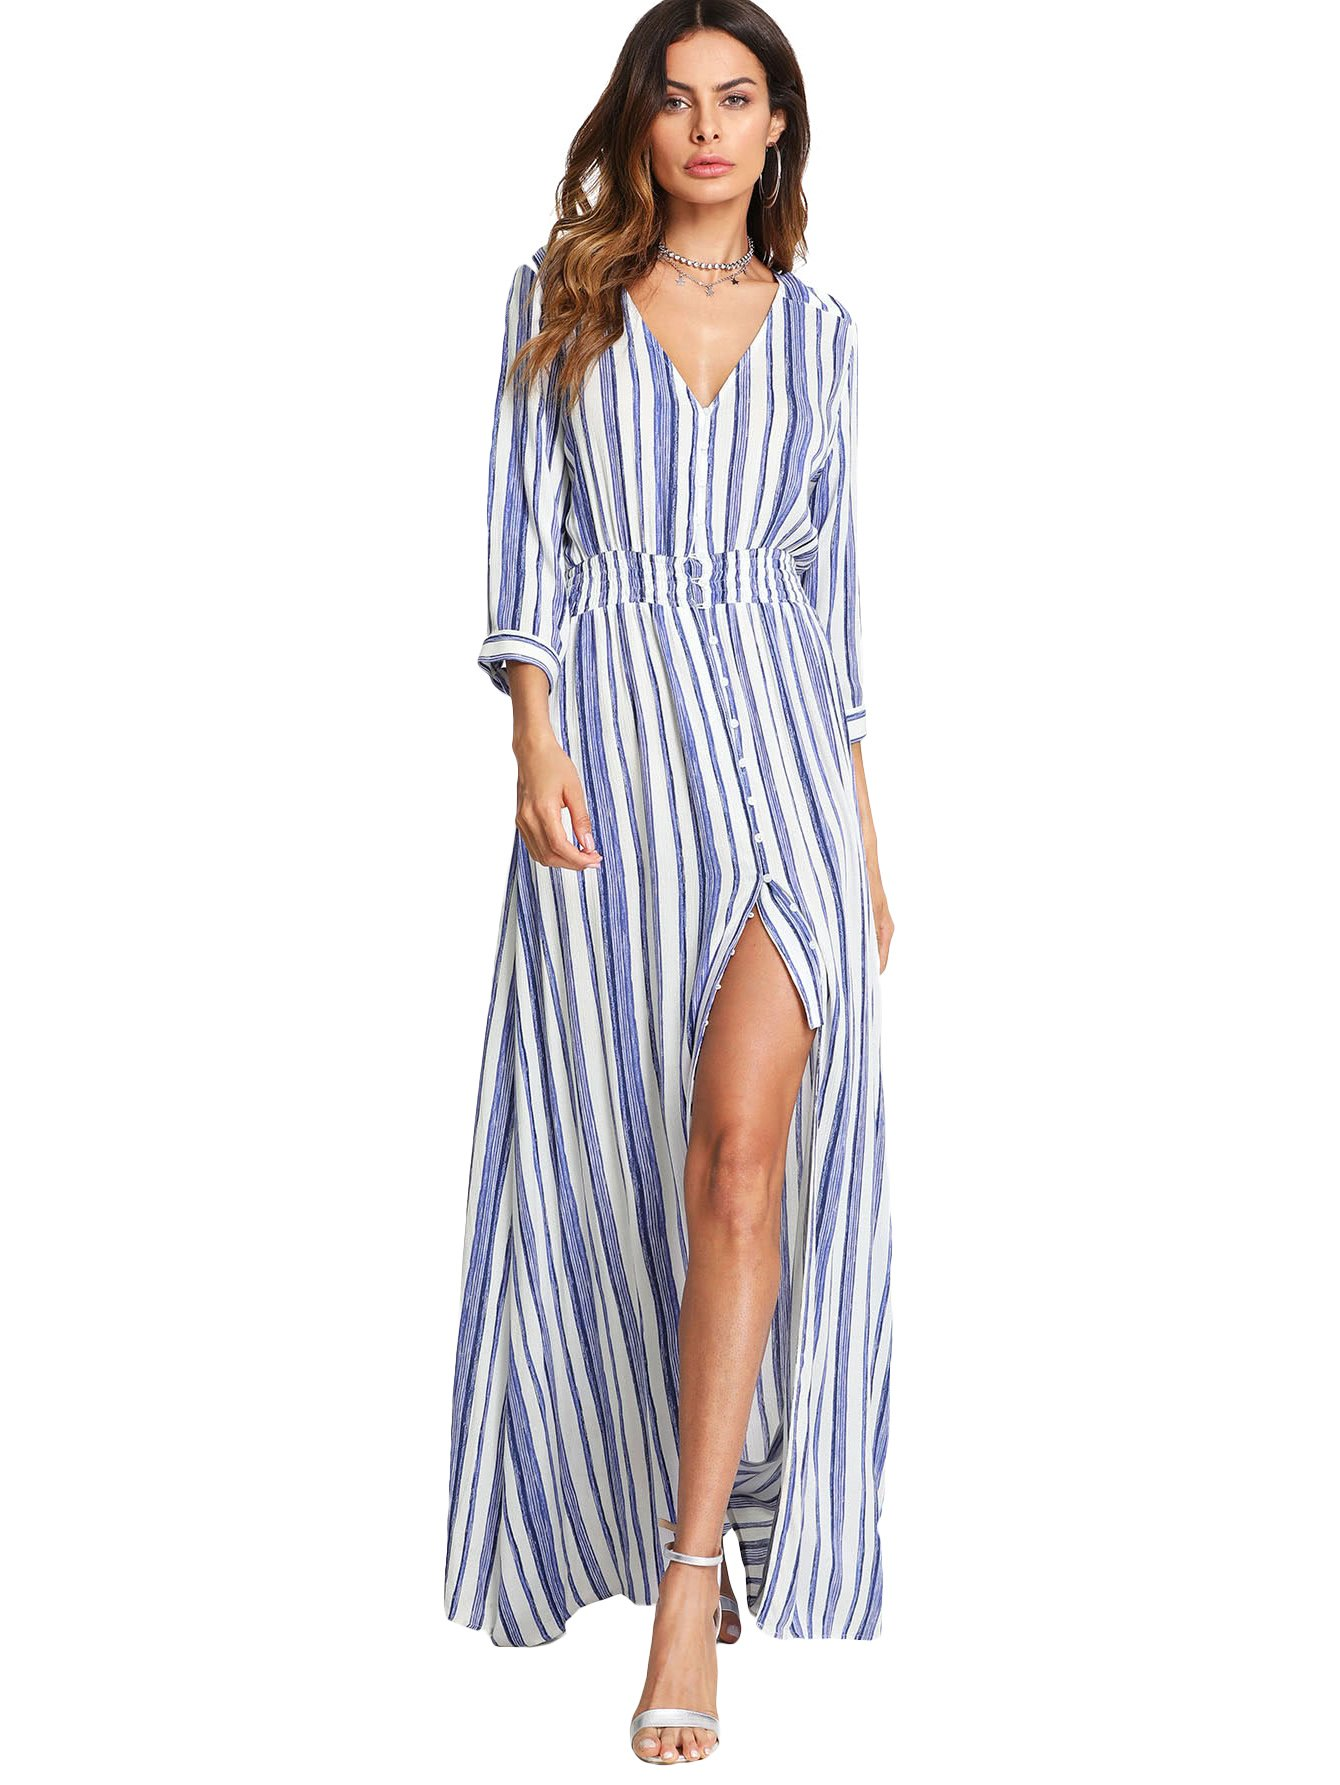 Milumia Stripe Dress, Women Smocked Waist 3 4 Sleeves Button up Summer Chic Blue and White S